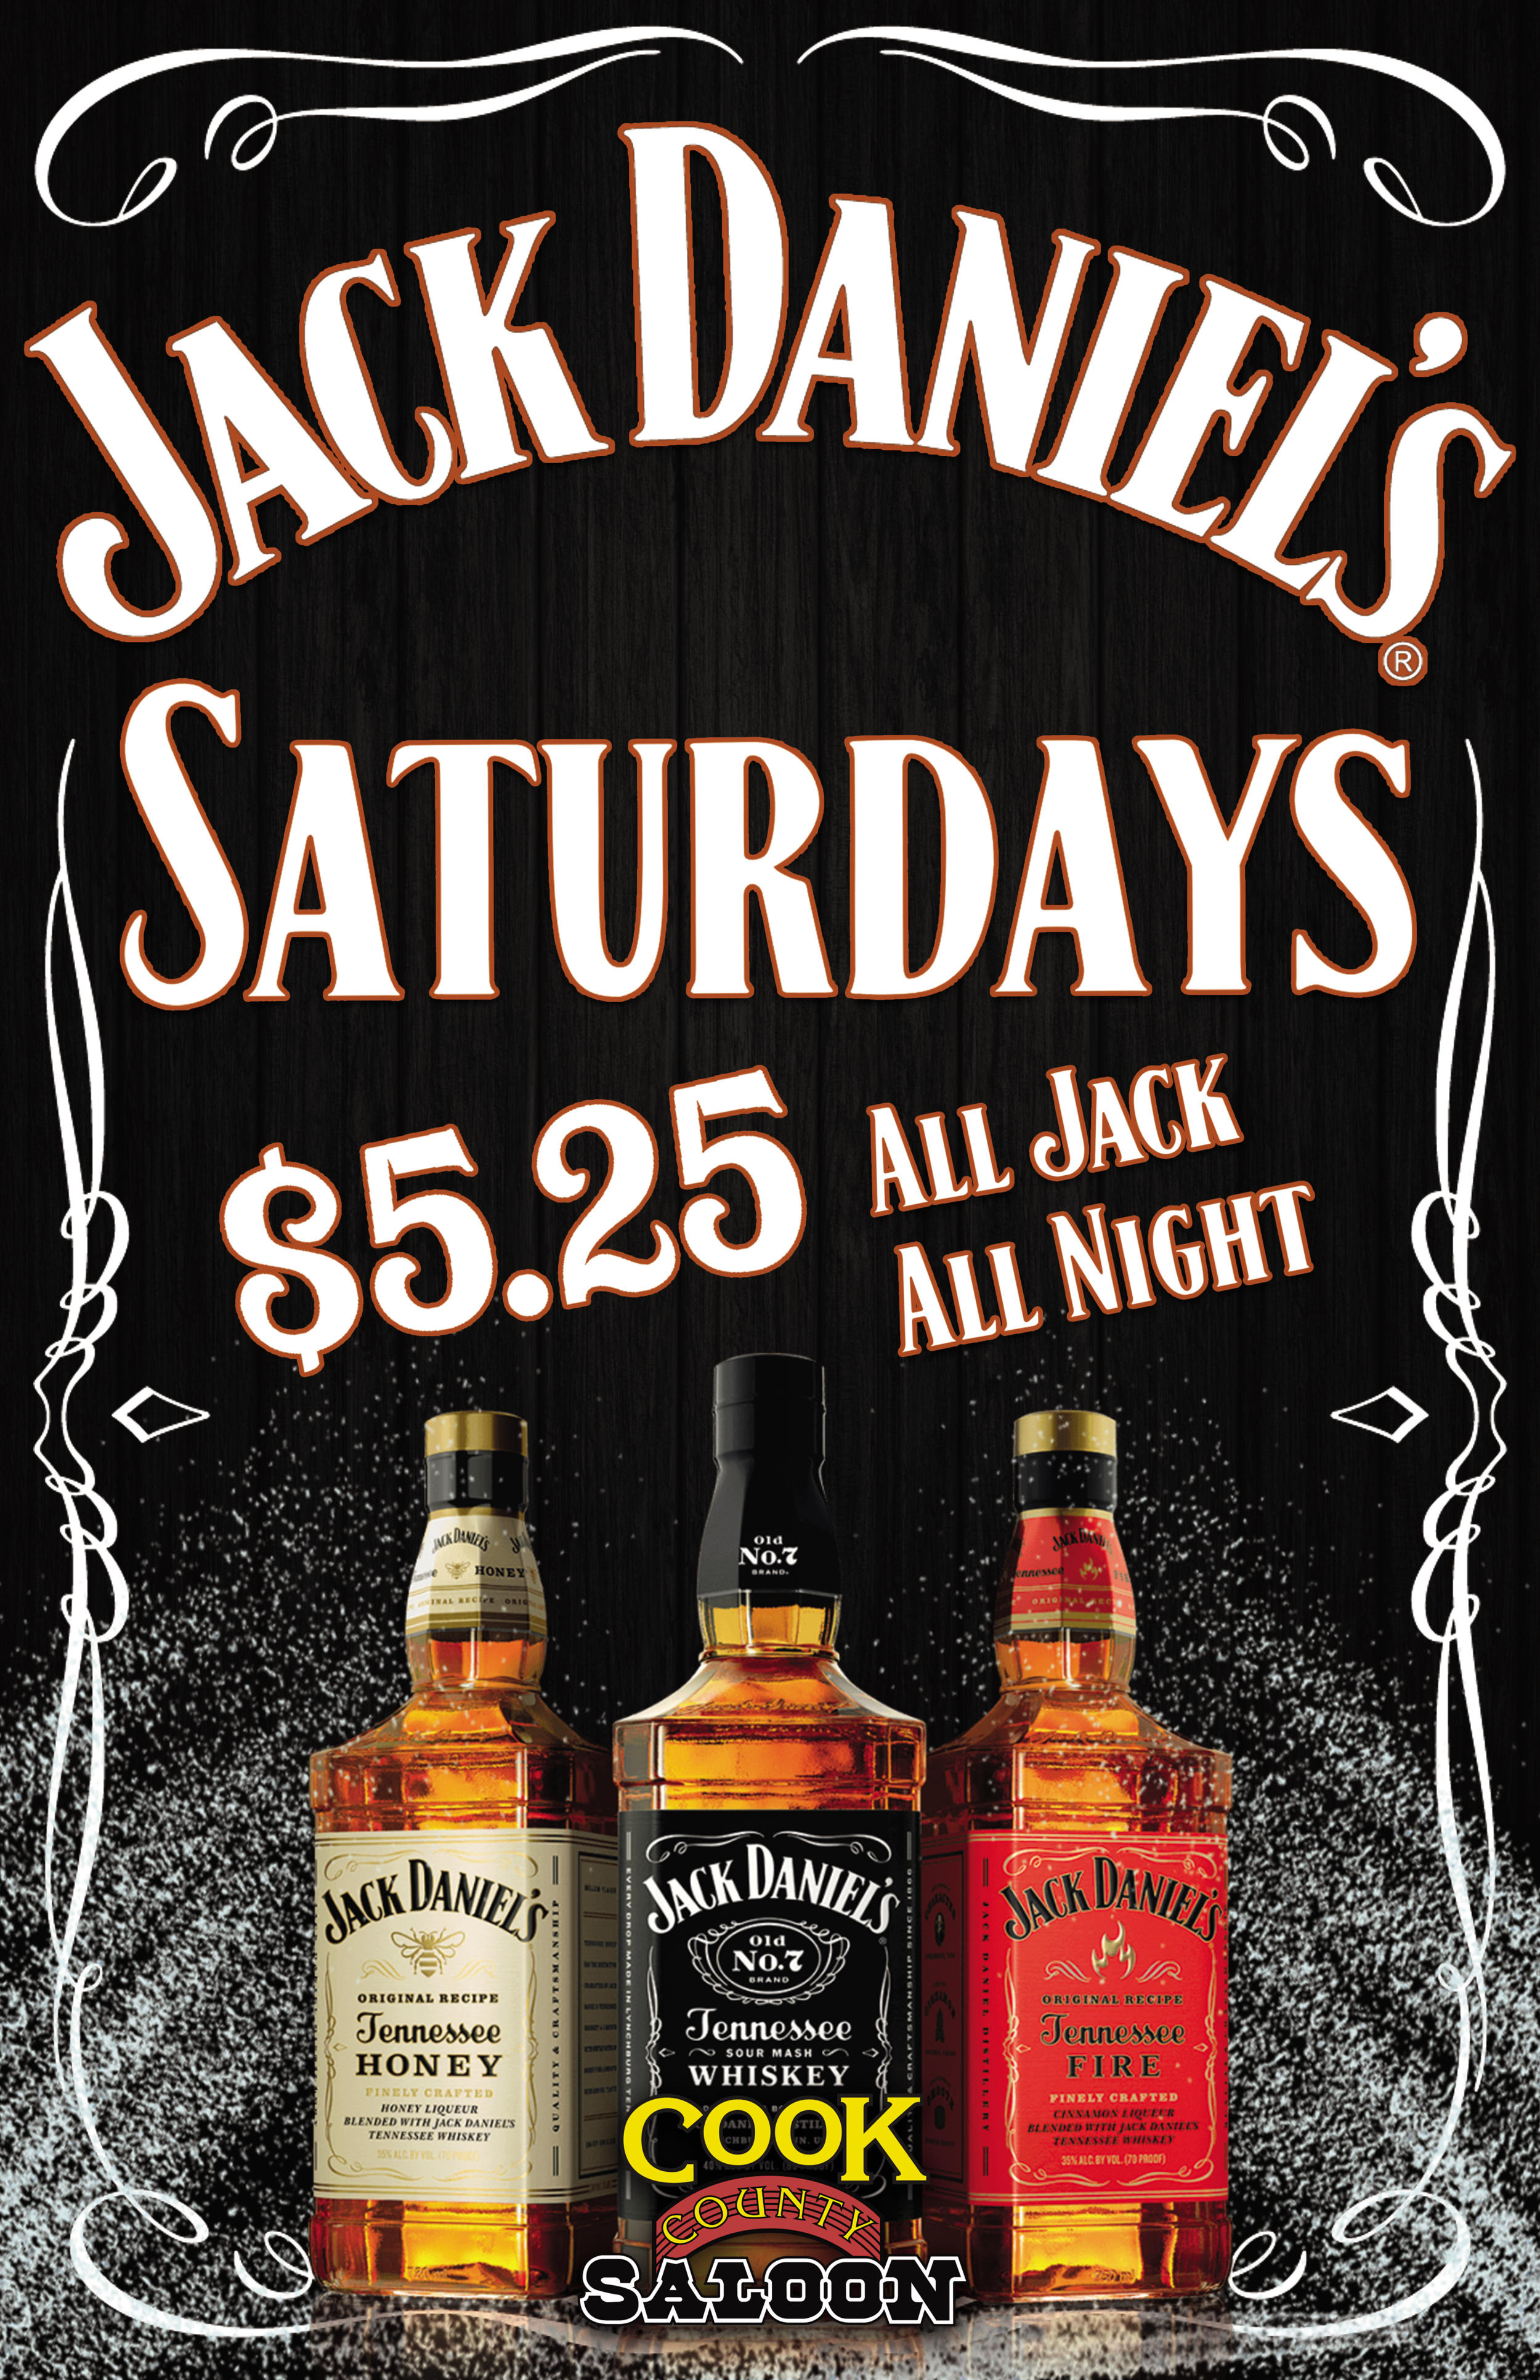 Serving Up The Coldest Jack Daniels in Edmonton! - $5.25 Jack Daniels no.7!$5.25 Jack Daniels Honey!$5.25 Jack Daniels Fire!$5.25 Tequila!Ready to book your package?